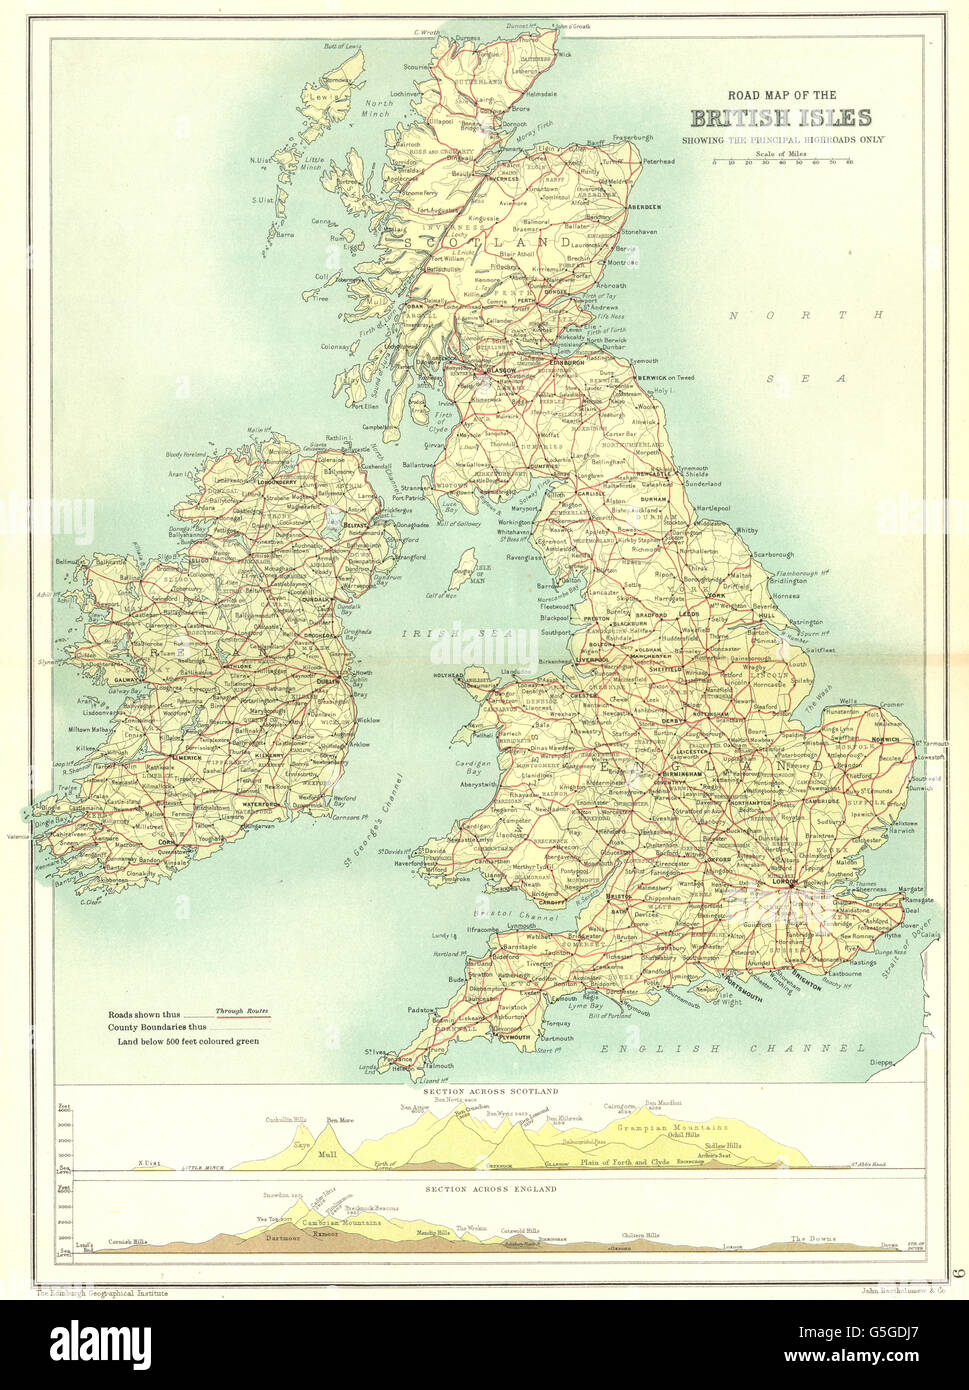 Road Map Of England And Scotland.British Isles Road Map Main Roads Sections Across Scotland Stock